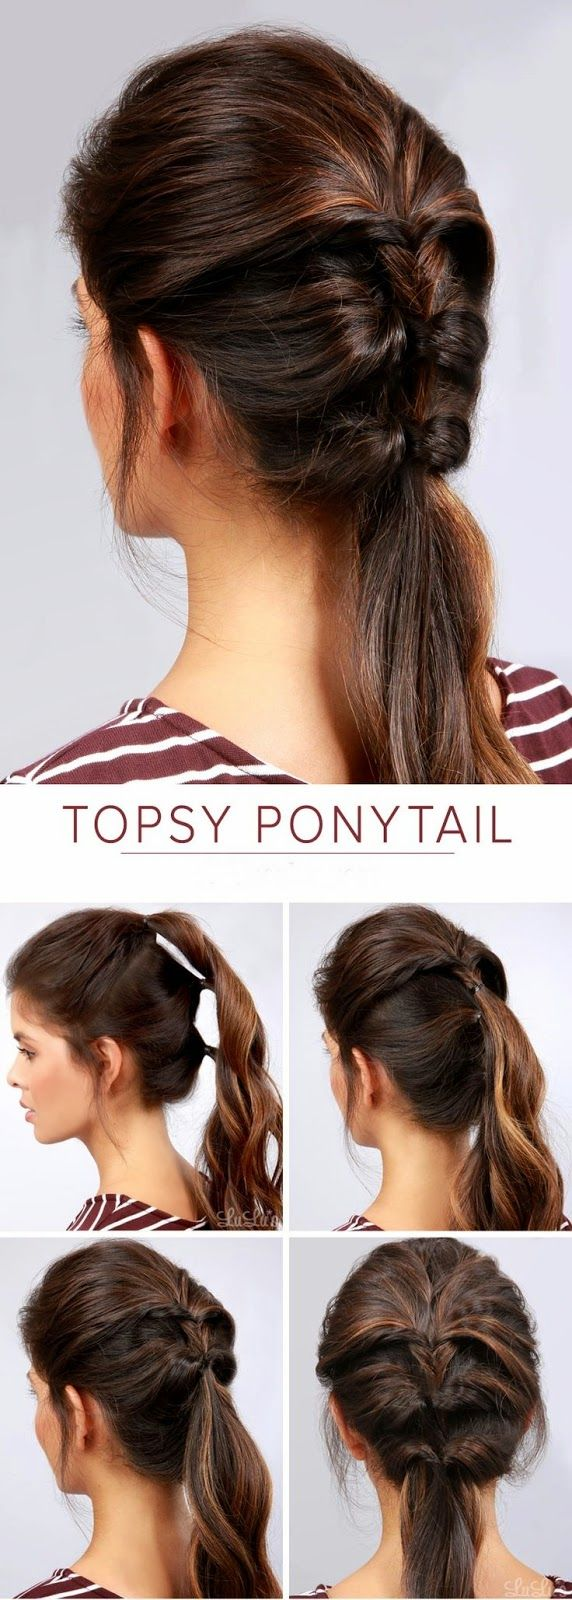 20 Ponytail Hairstyles: Discover Latest Ponytail Ideas Now recommendations